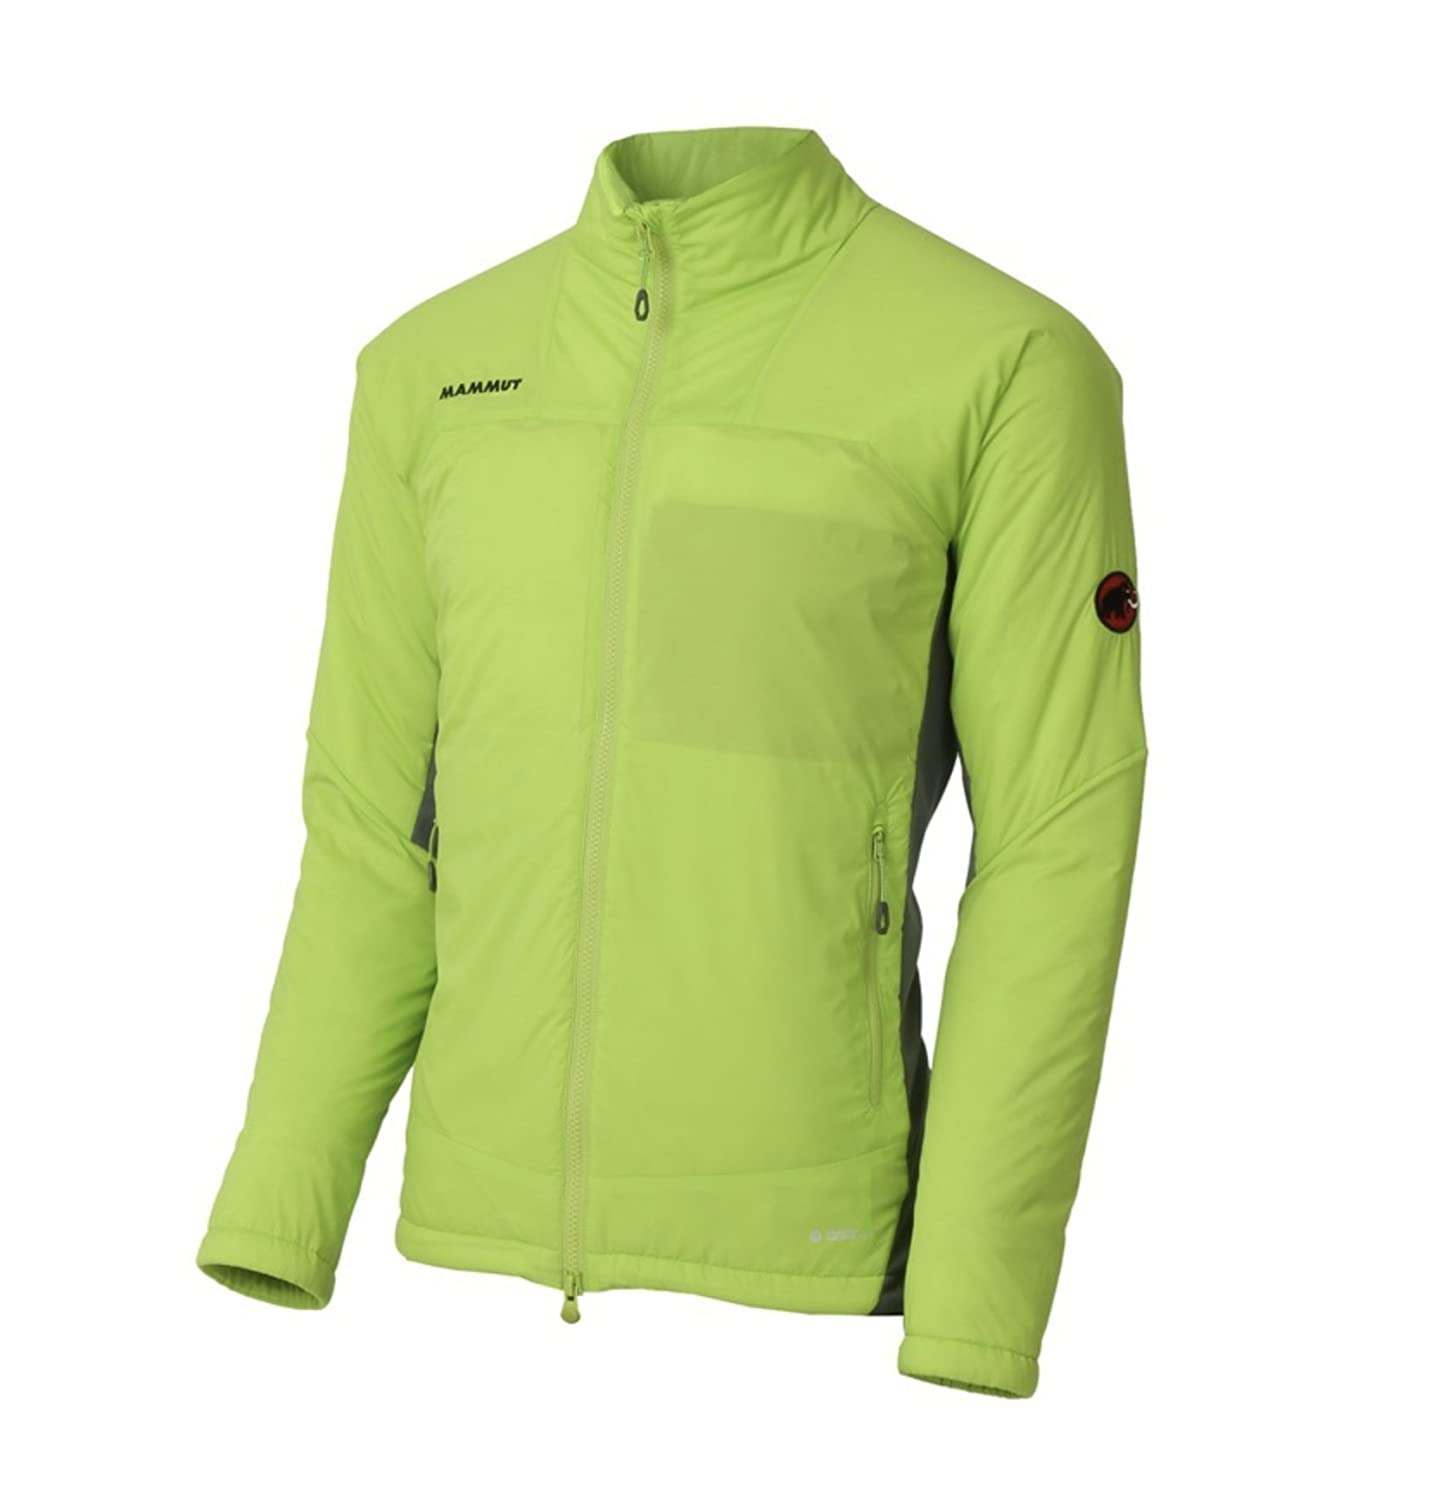 FLEXLIGHT HYBRID JACKET